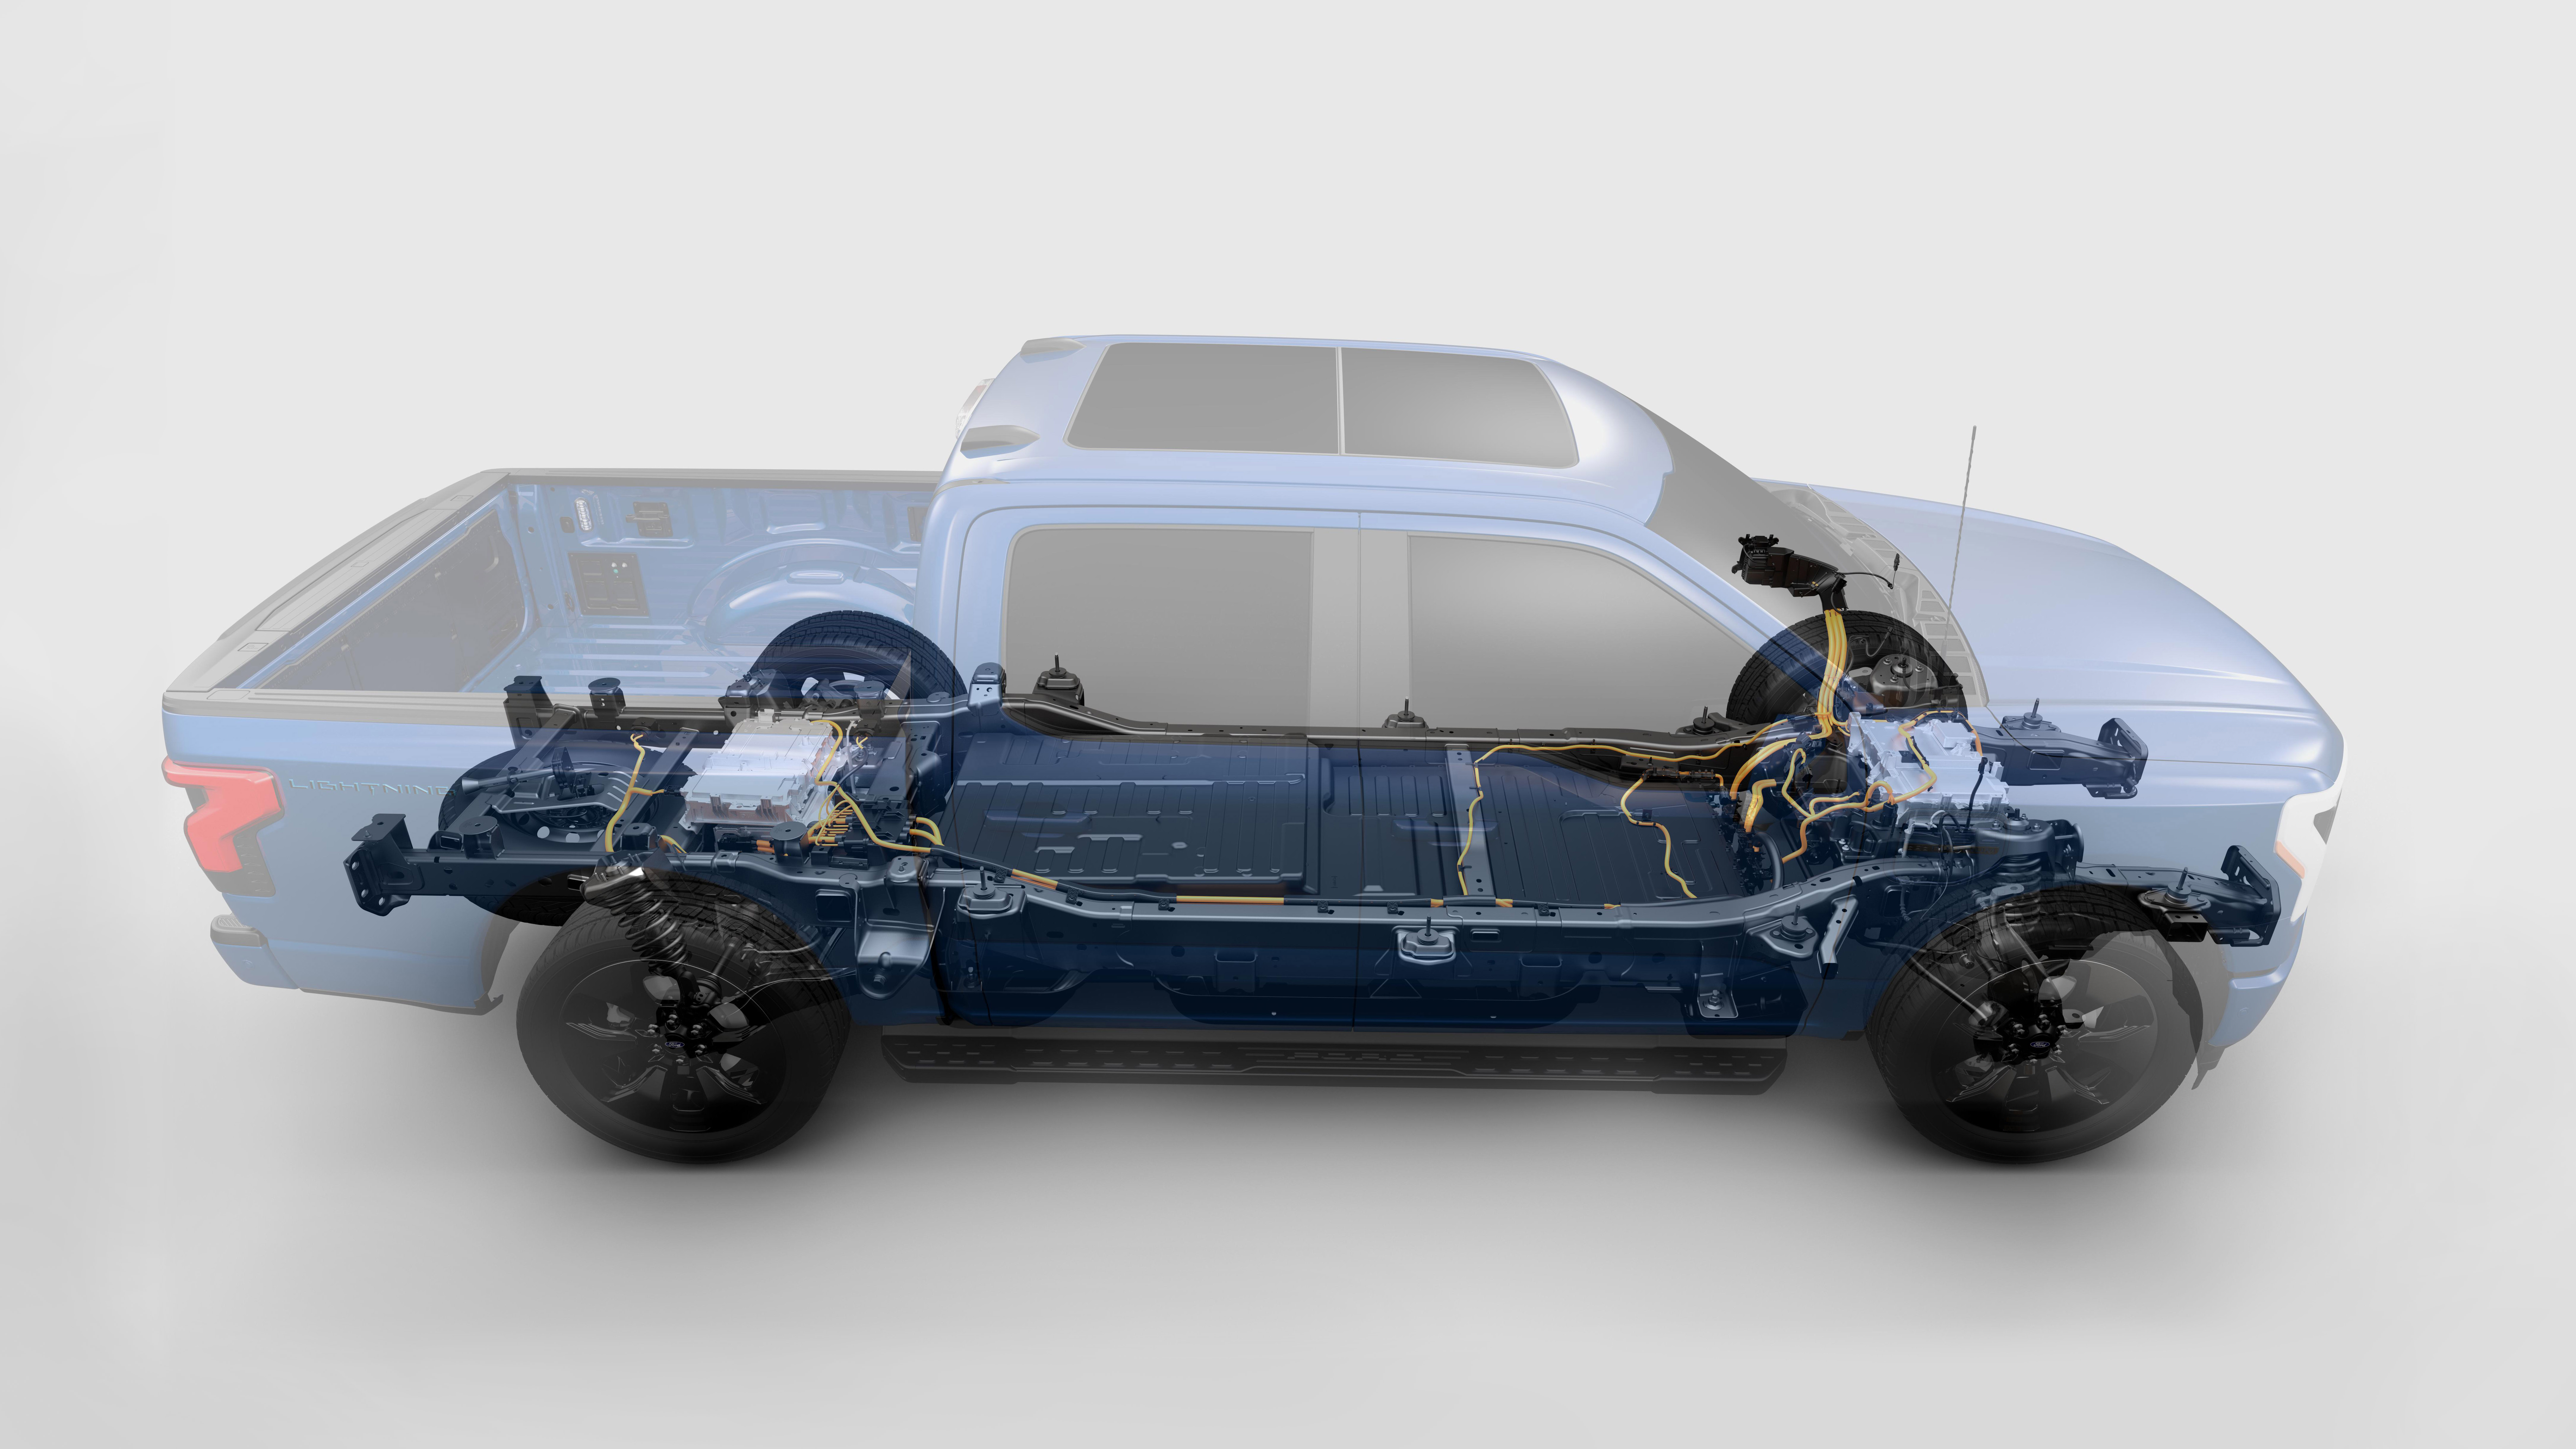 The standard battery on the F-150 Lightning has 230 miles of range. The extended version brings that up to 300 miles